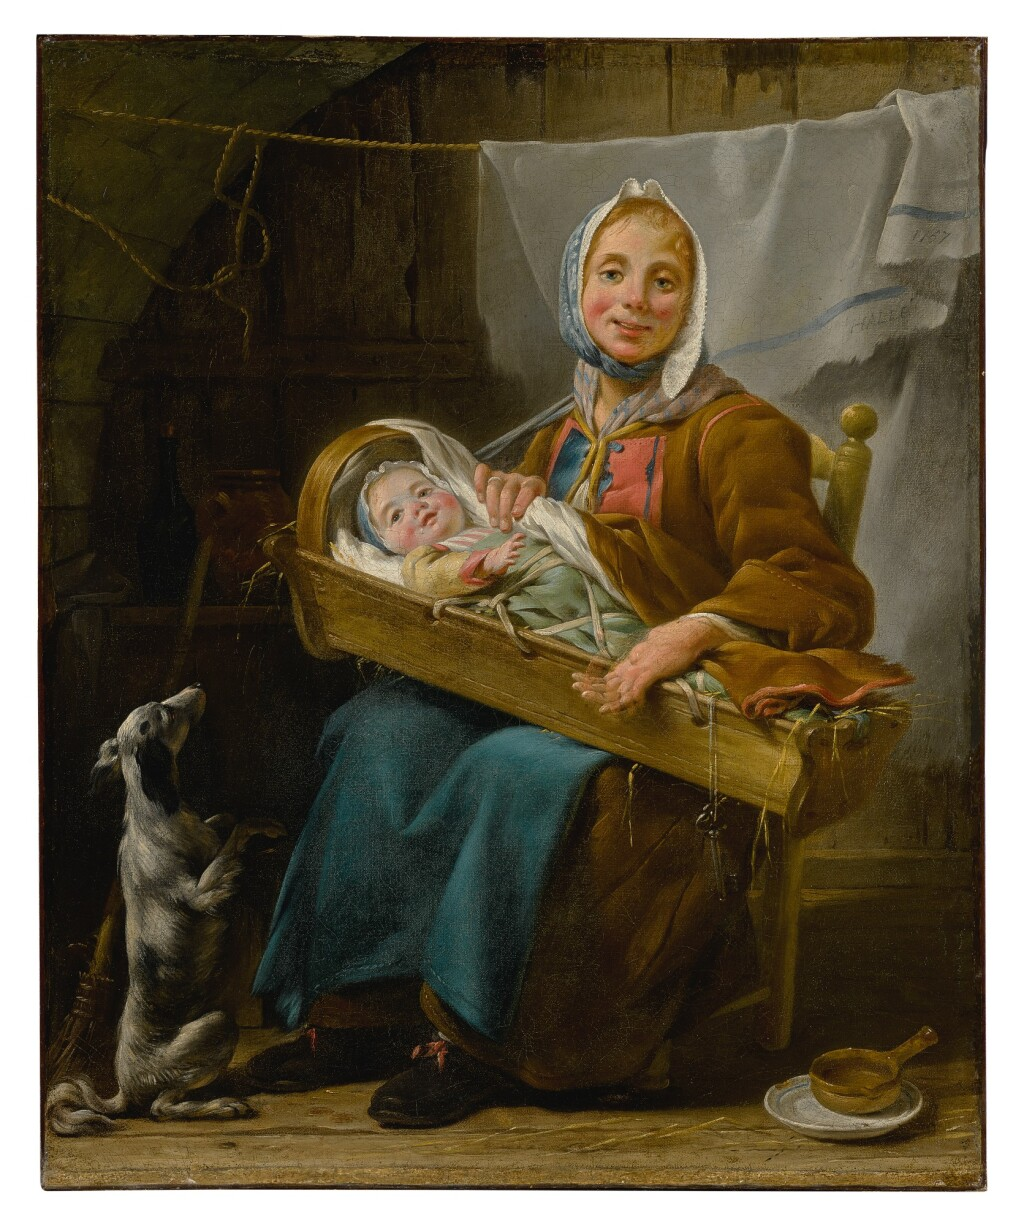 NOËL HALLÉ   PORTRAIT OF A WOMAN, SAID TO BE GENEVIÈVE LORRY, DRESSED AS A SAVOYARDE, HOLDING AN INFANT IN A CRIB, SITTING IN A COURTYARD, TOGETHER WITH A BEGGING DOG